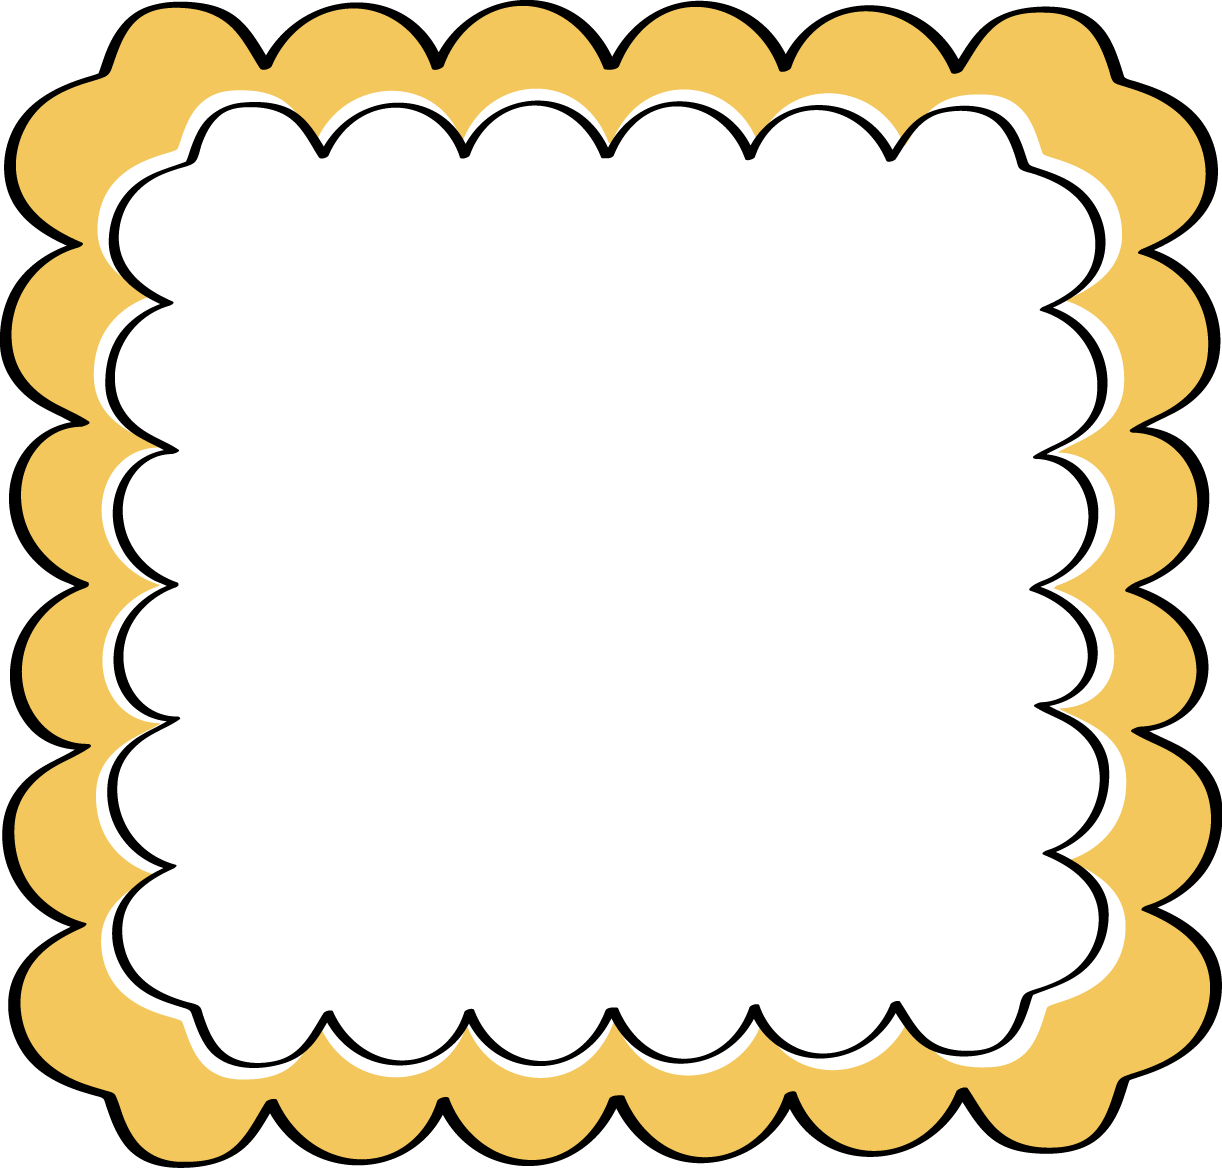 Frames clipart yellow, Frames yellow Transparent FREE for.